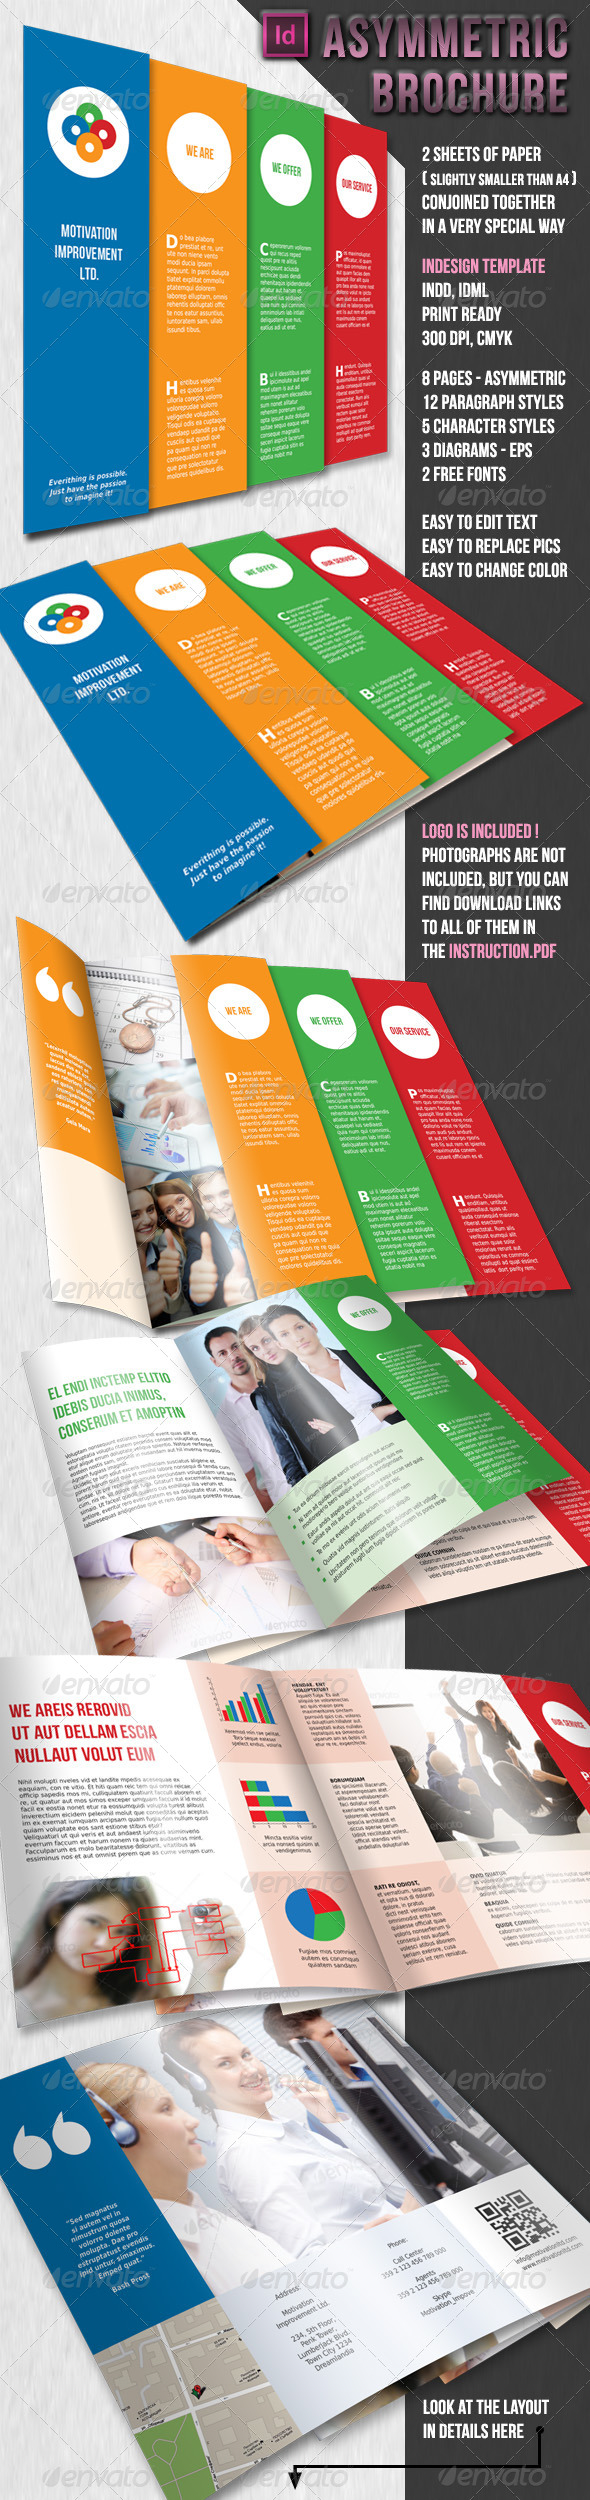 Asymmetric brochure 2 x a4 8 pages by lumberjackbg for One sided brochure template